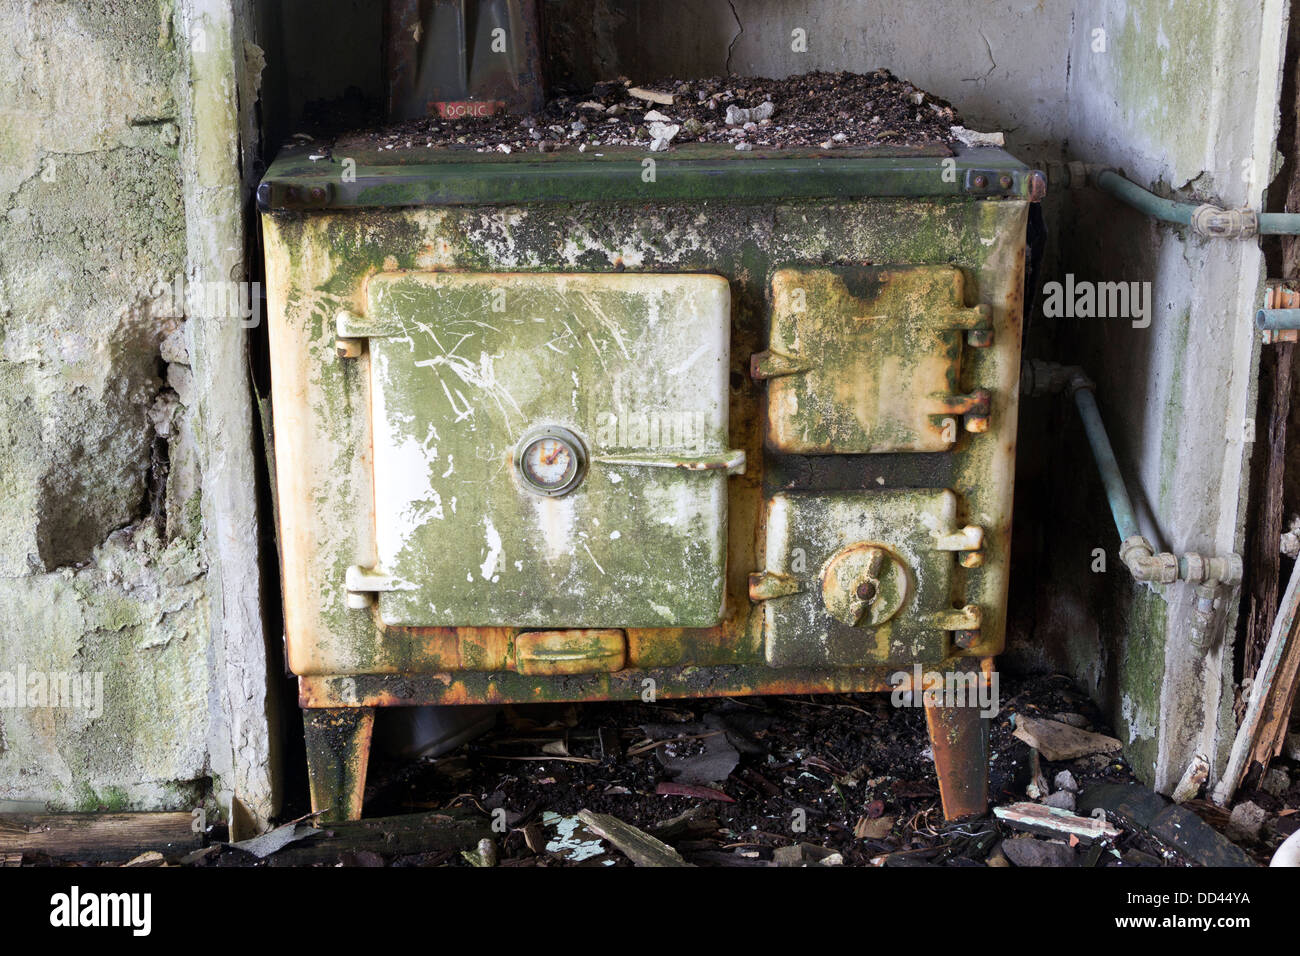 AN old Stove in a derelict croft house Isle Of Lewis UK. - Stock Image